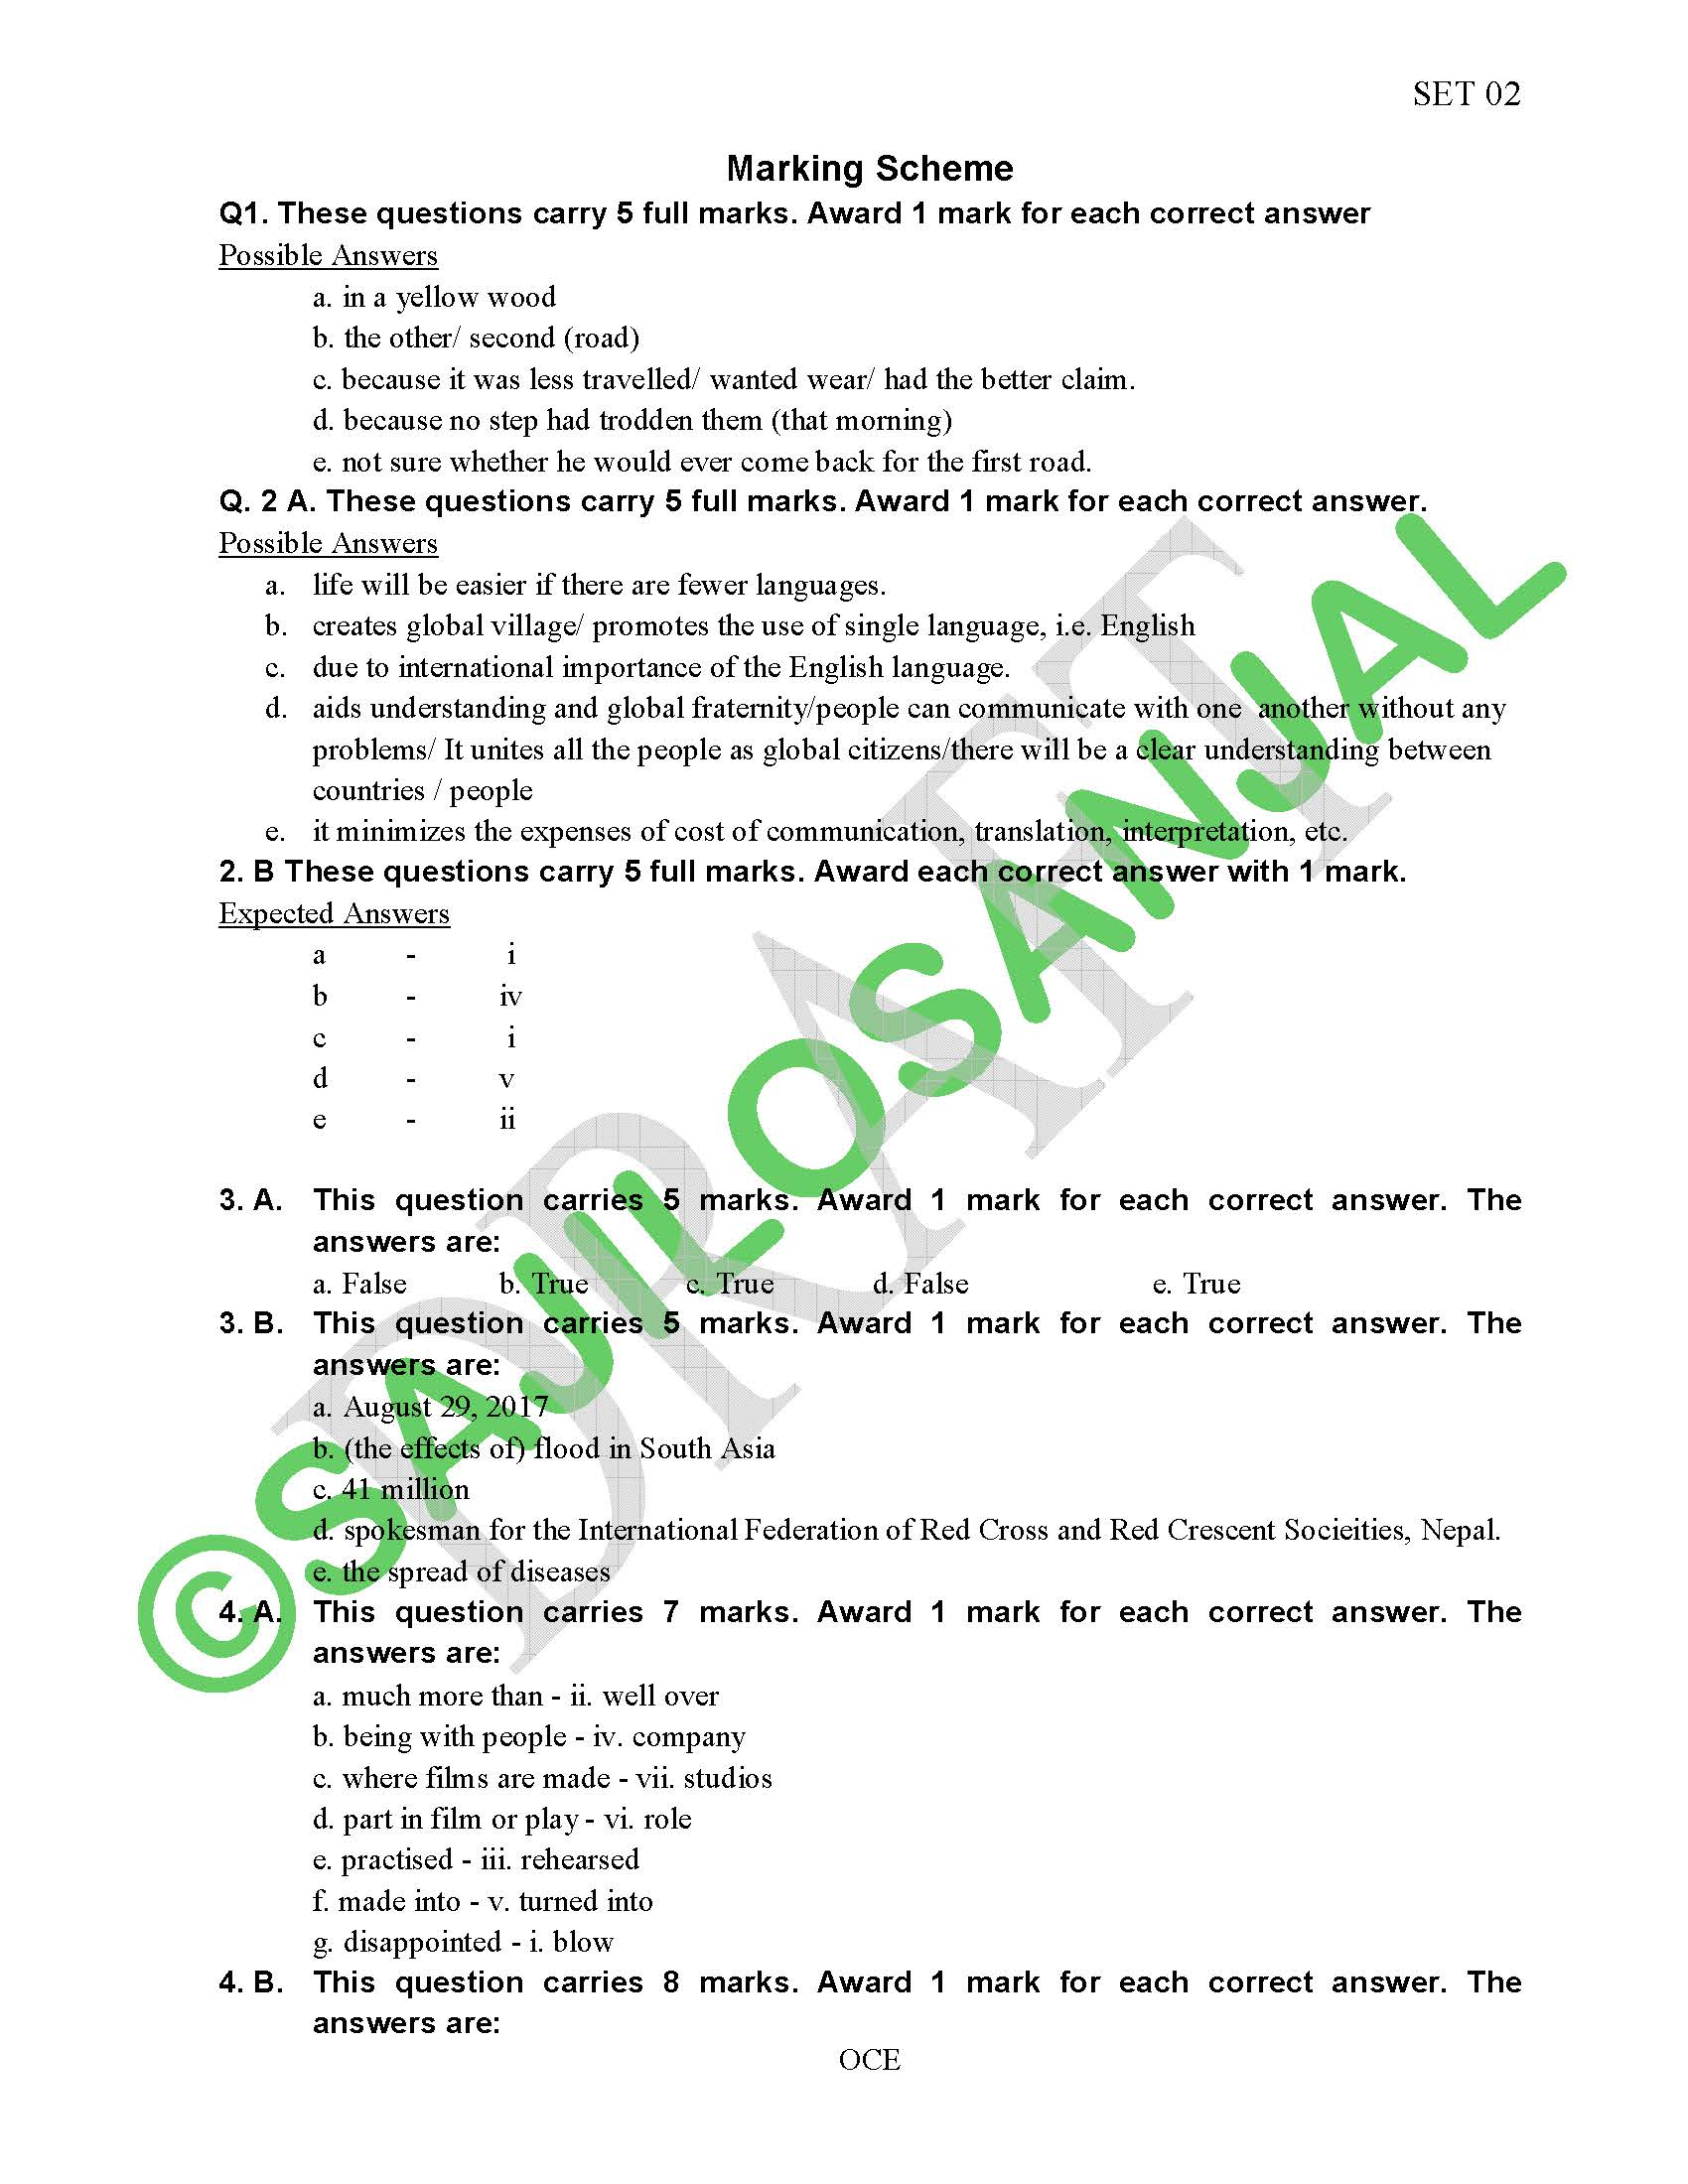 see model question 2074 english, slc model questions of english with answers, see english model question 2074, see english model question, see questions English, see model question 2075 English, see model question 2074 English, see model question 2074 pdf, see model questions of compulsory English, see compulsory English, see model question 2074 English, see questions of English, see English questions, see model questions English, see questions 2074 English, see model questions English 2074, see model questions for English, see English questions, see questions English, see English questions, see practice questions English, see model questions English, see model questions of English, see questions of English, see model questions of English with answers, see English questions, see model questions English, see model questions 2074, see questions 2075, see questions model ,, model question 2074, see questions 2074, see all questions, see draft questions, www.see questions.com, see model questions computer, see draft questions 2074, see model questions for 2074, see entrance questions, questions for see, see 2074 questions and answers, see sample questions see set questions,, see questions paper 2074, see questions paper, see practice questions, see model questions 2074 pdf, see practice questions 2075, see model questions 2074 download, see model question 2075 English, see model question 2074 English, see model question 2074 pdf, see model questions of compulsory English, see compulsory English , see model question 2074 English, see questions of English, see English questions, see model questions English, see questions 2074 English, see model questions English 2074, see model questions for English, see English questions, see questions English, see English questions, see practice questions English, see model questions English, see model questions of English, see questions of English, see model questions of English with answers, see English questions, see model questions 